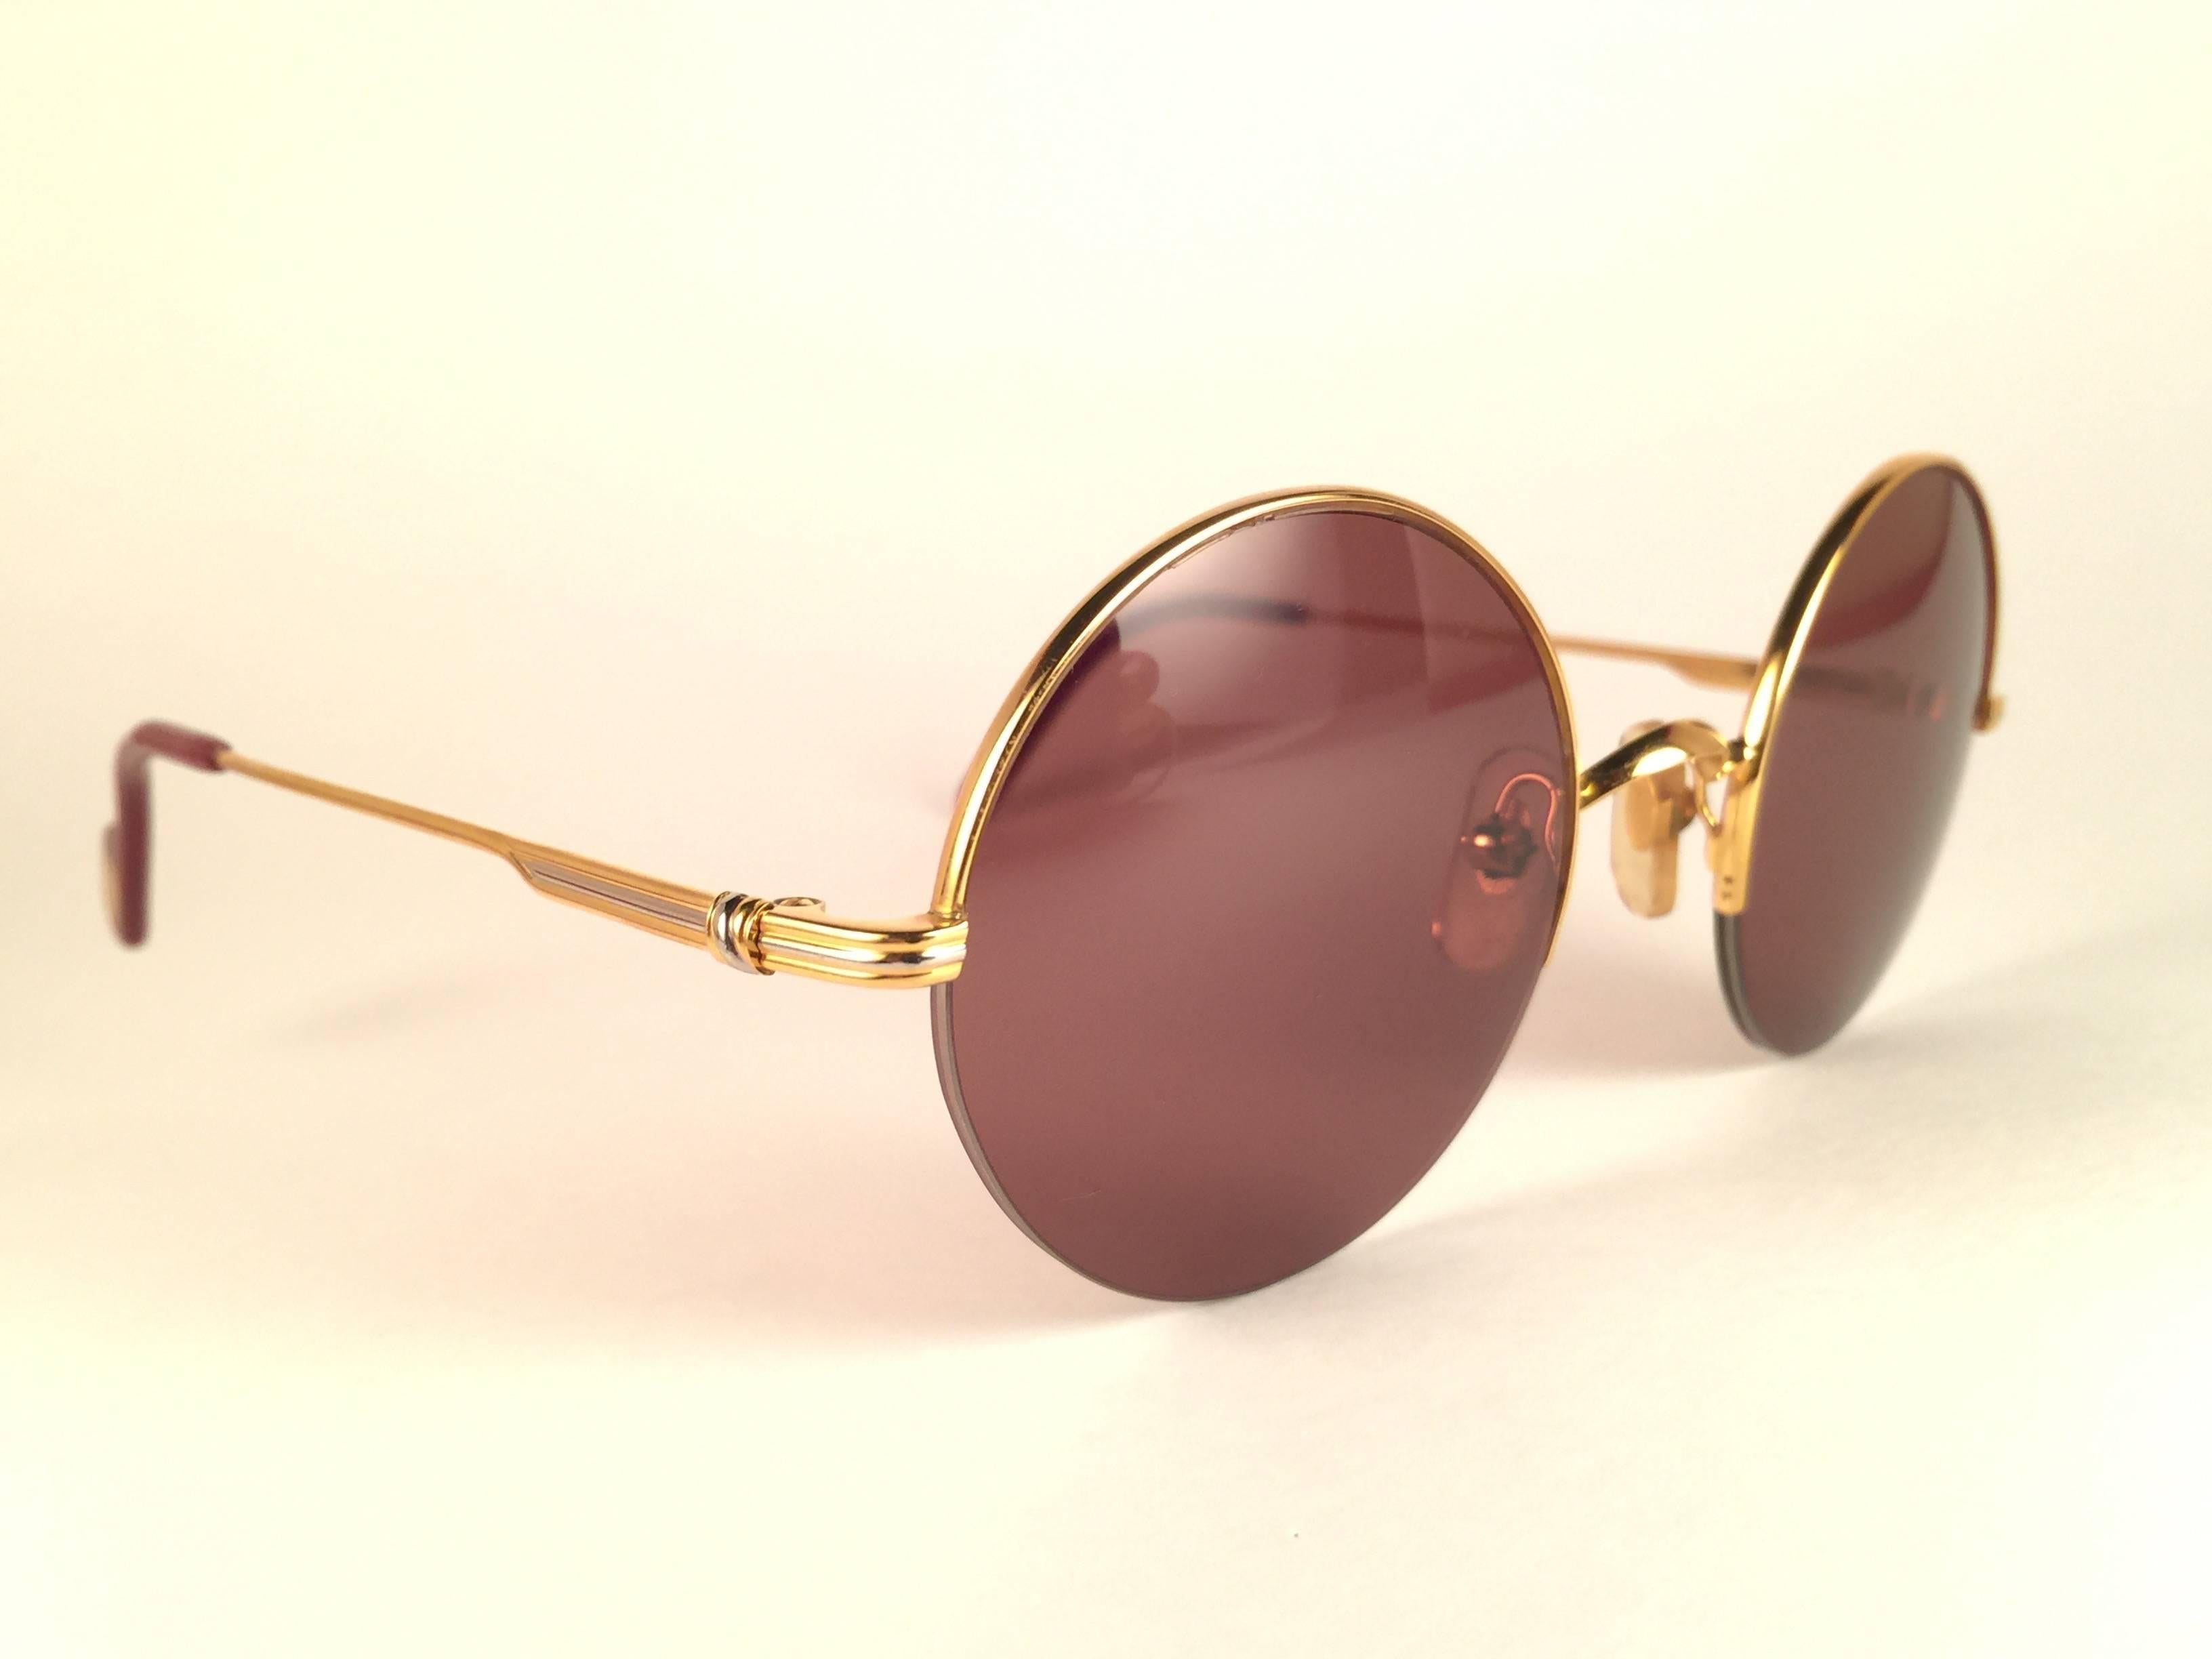 3cd8317d3b6a New Cartier Mayfair Round Half Frame Gold 47mm Brown Lens France Sunglasses  For Sale at 1stdibs